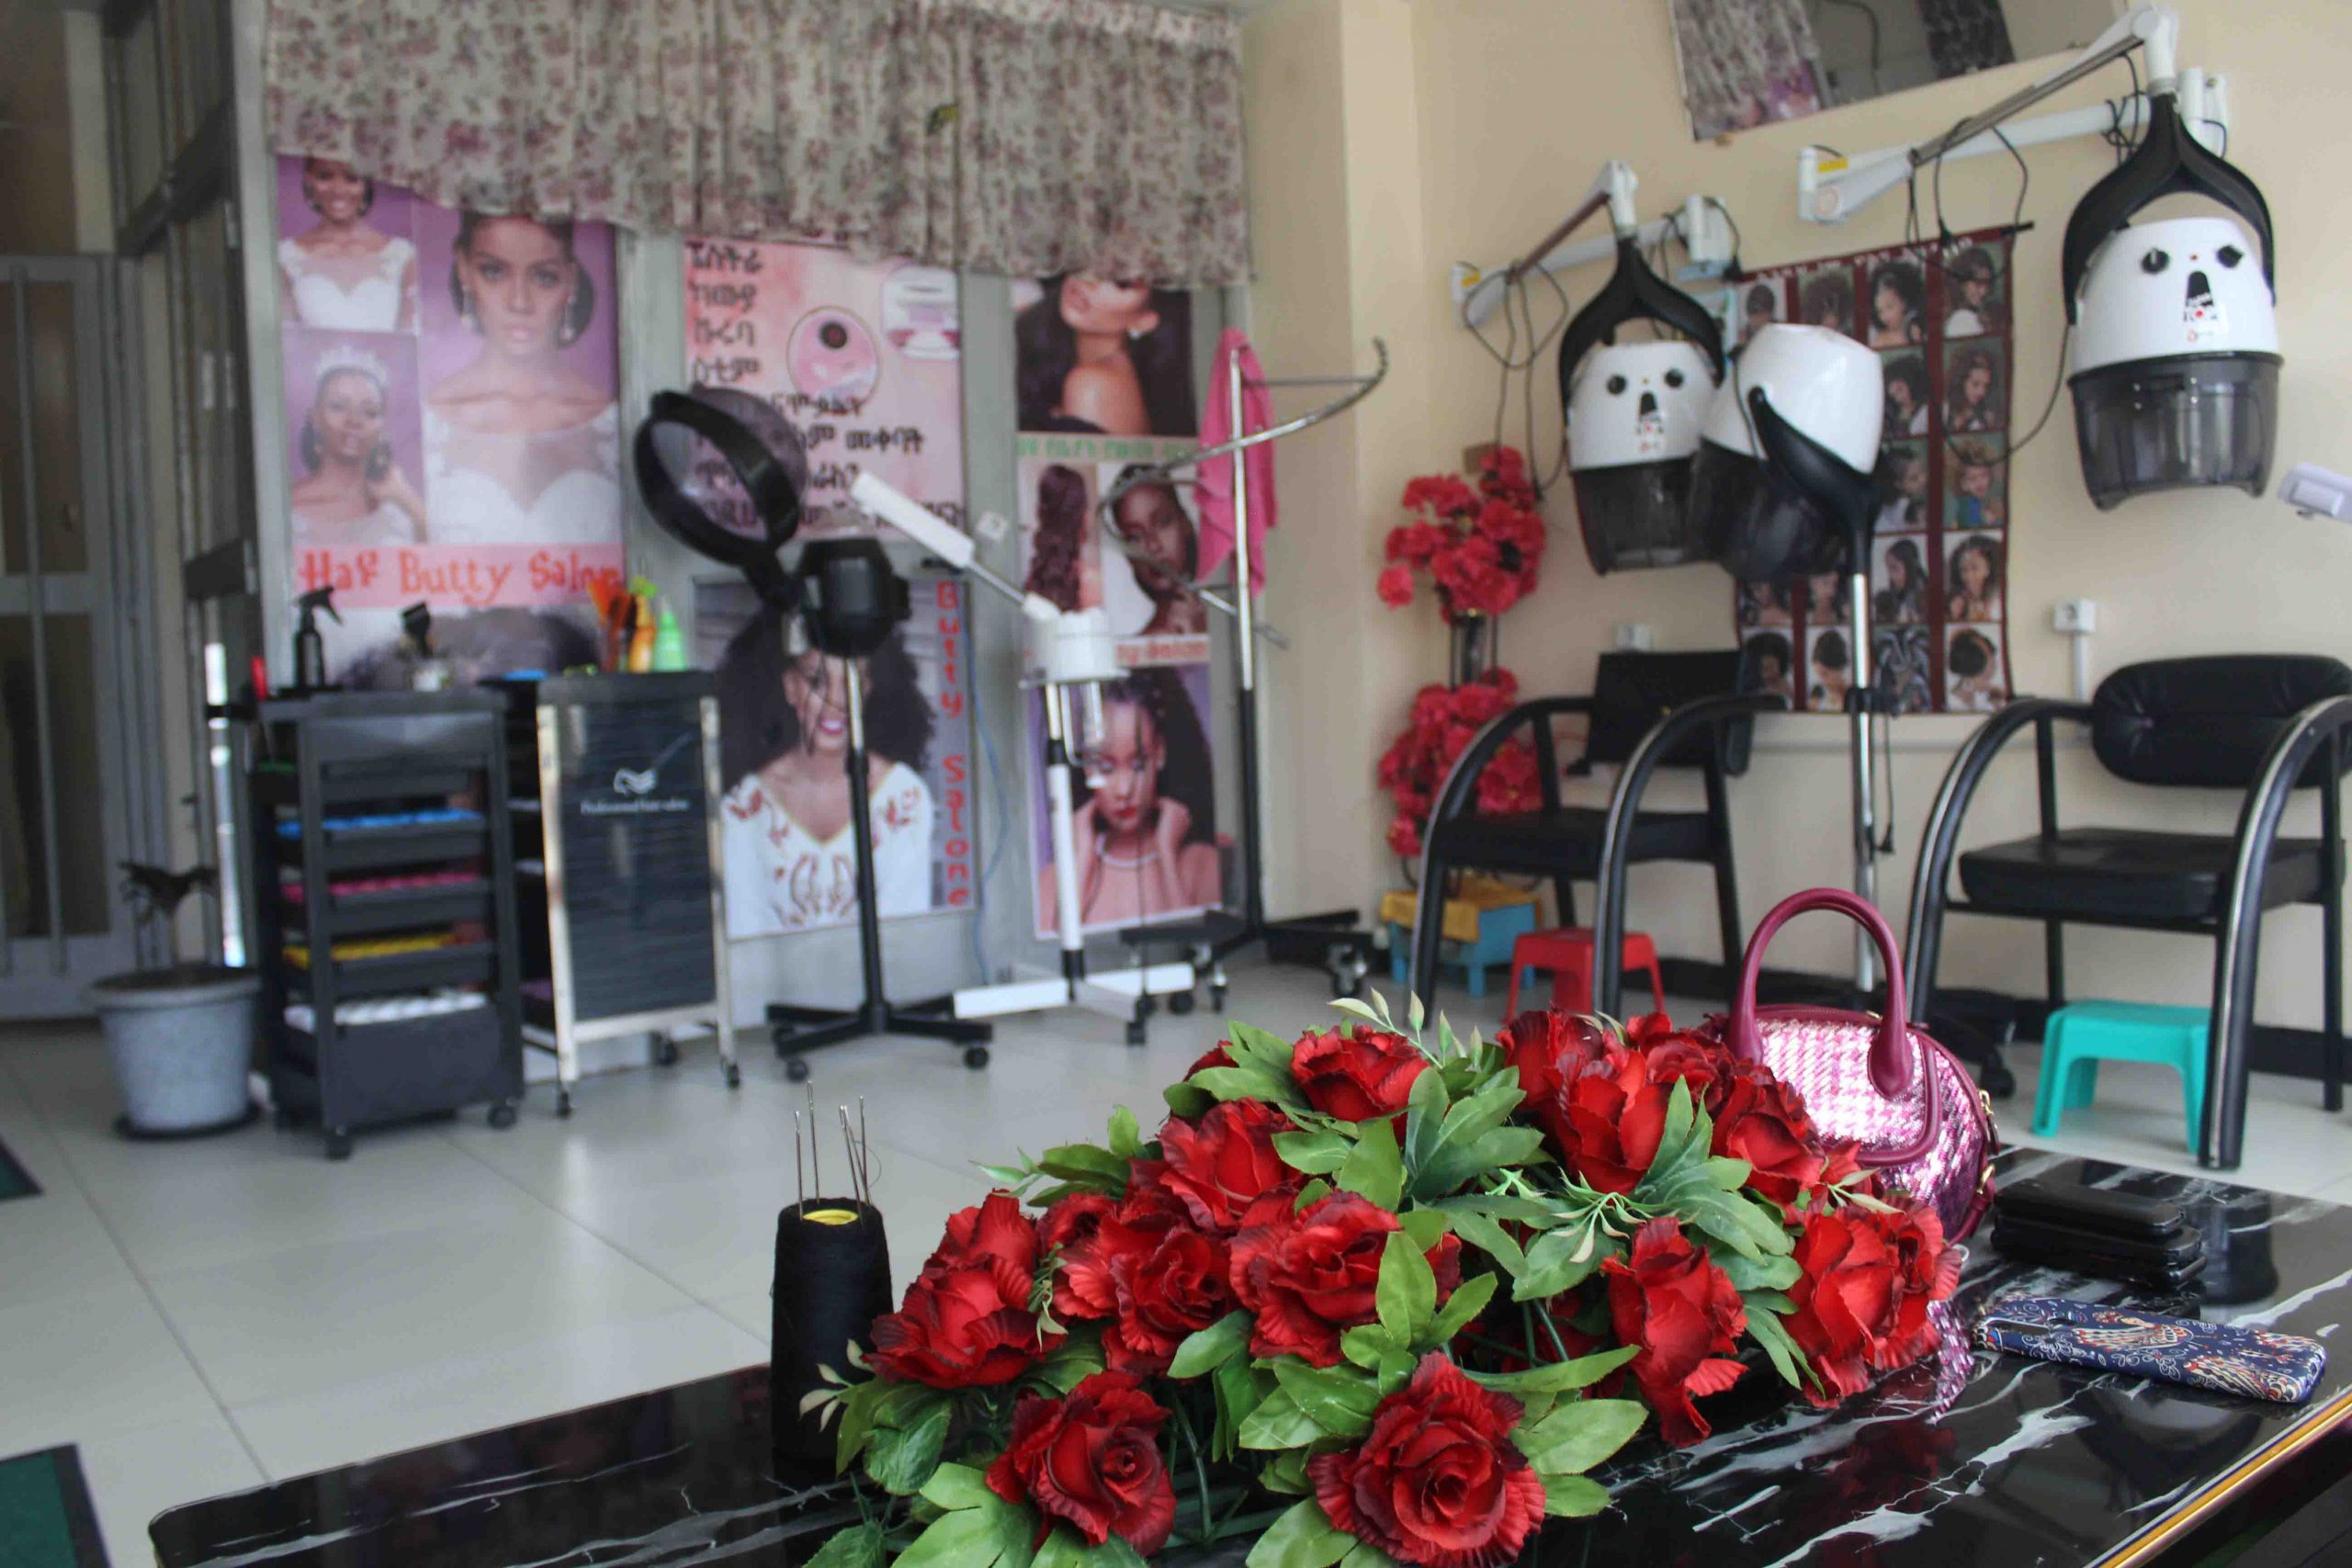 Hayu Beauty Salon